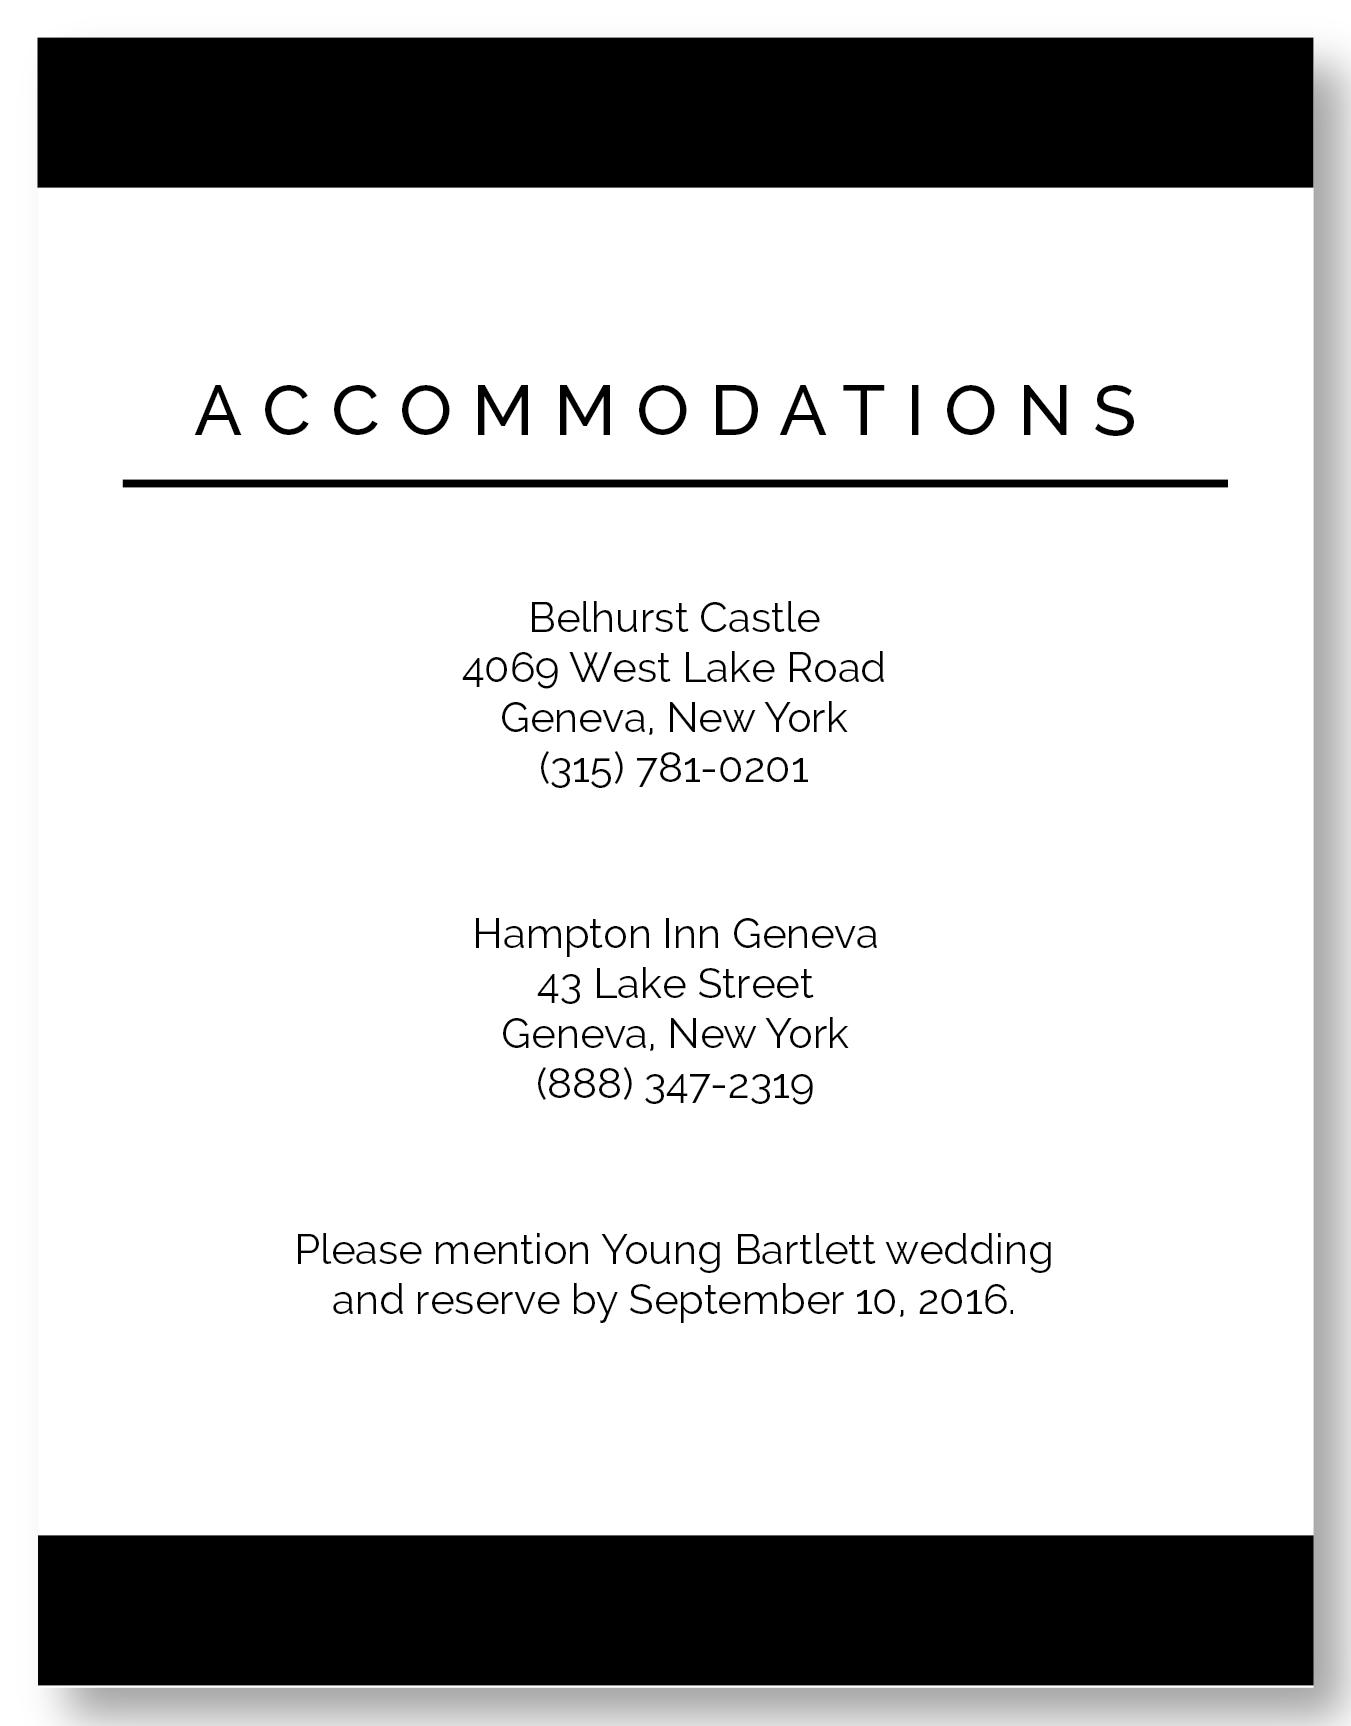 The Geneva - Accommodation Card